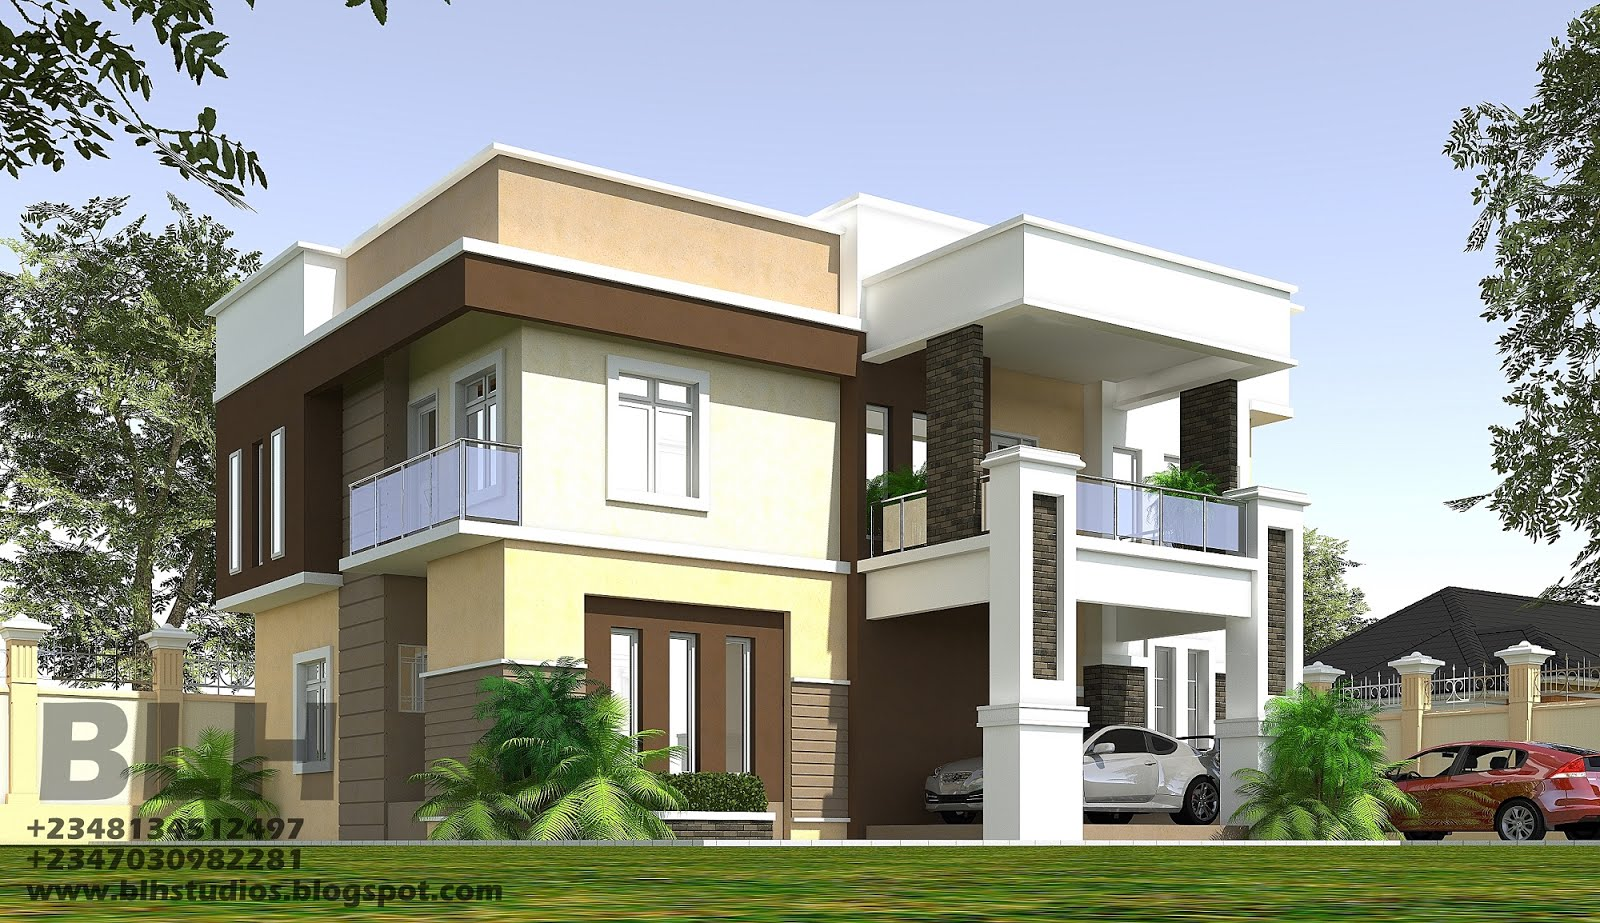 Architectural designs by blacklakehouse 2 bedroom for Flat roof bungalow designs